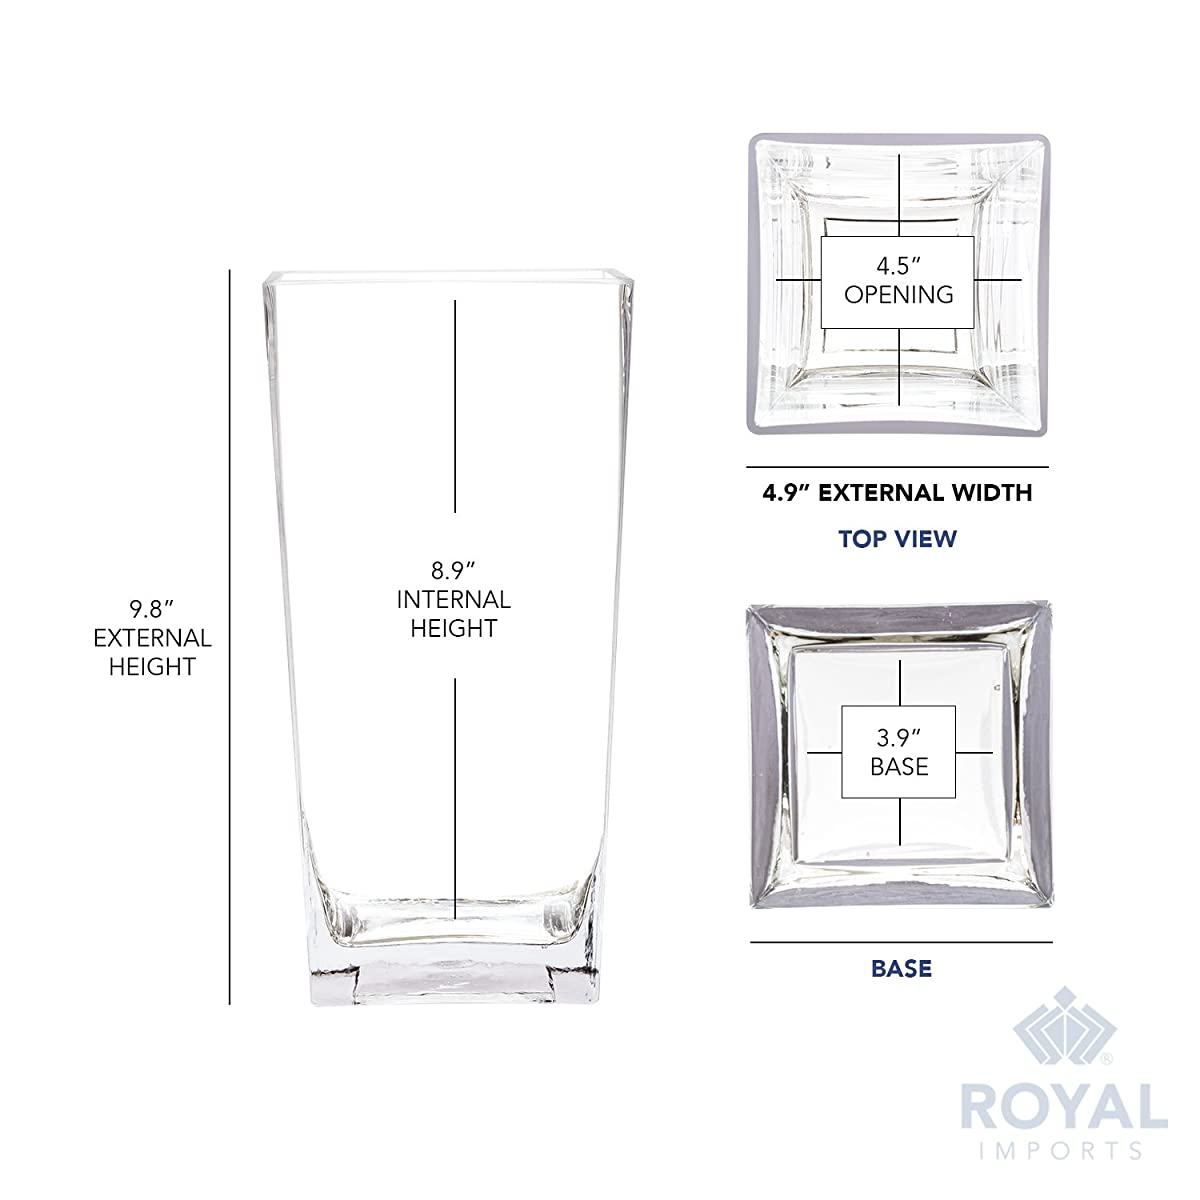 """Royal Imports Flower Glass Vase Decorative Centerpiece Home Wedding Tall Square Tapered Shape, 10"""" Tall, 5""""x5"""" Opening"""